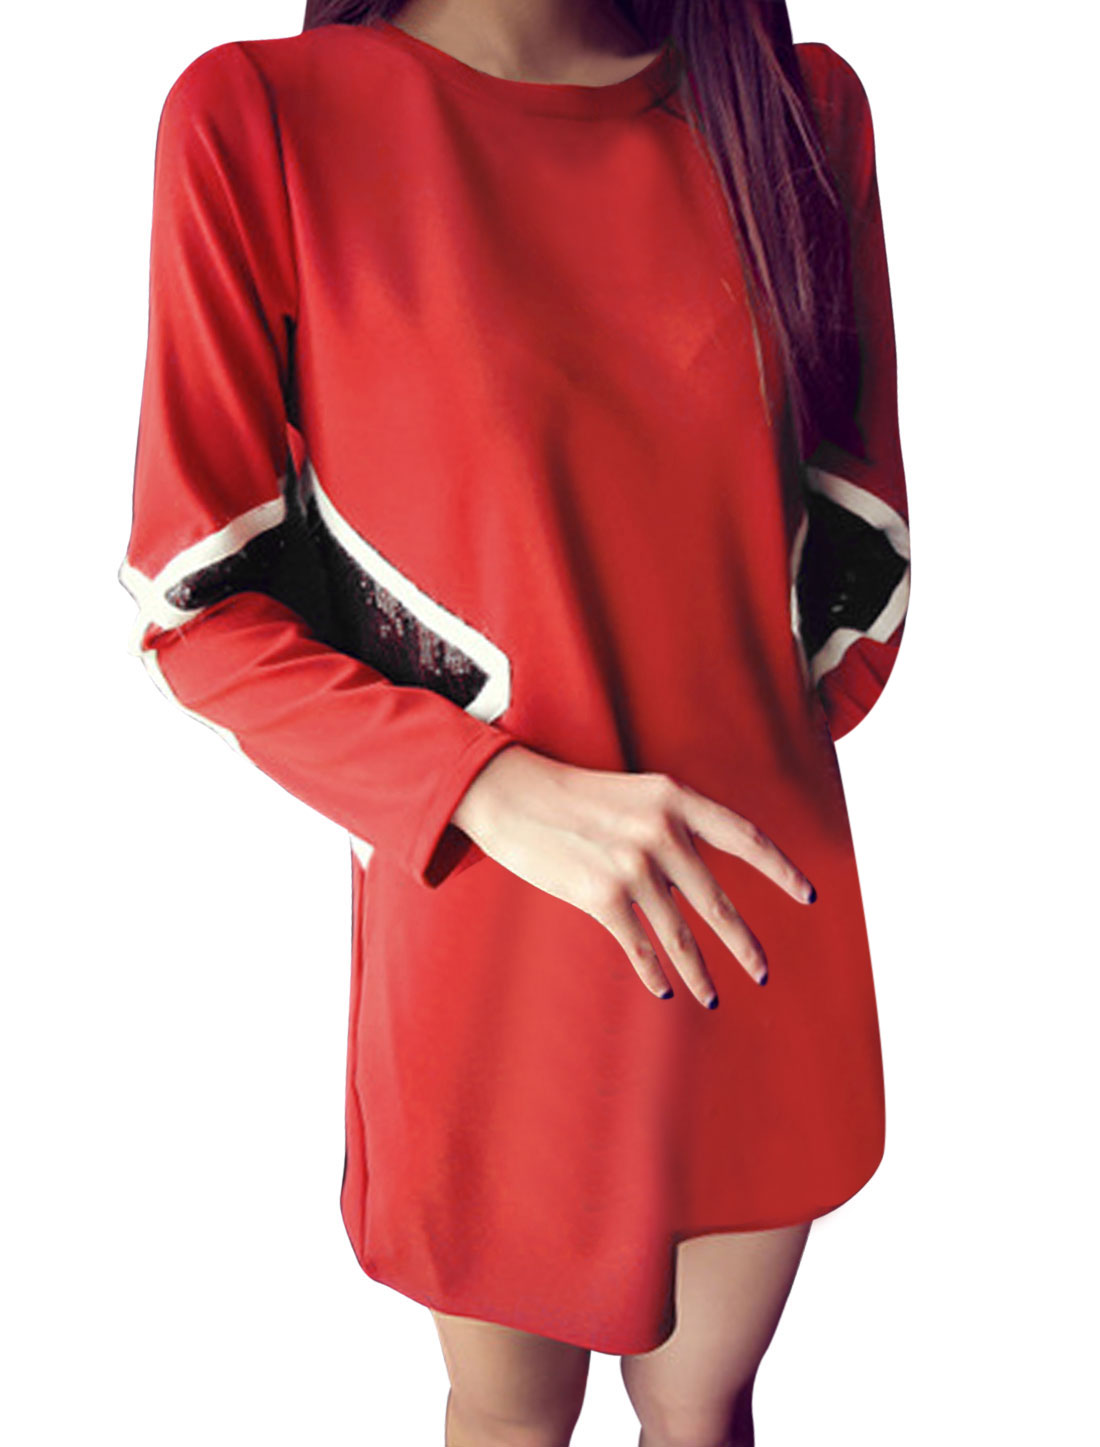 Women Round Neck Paillette-embellished Long Sleeves Chic Straight Dress Red M